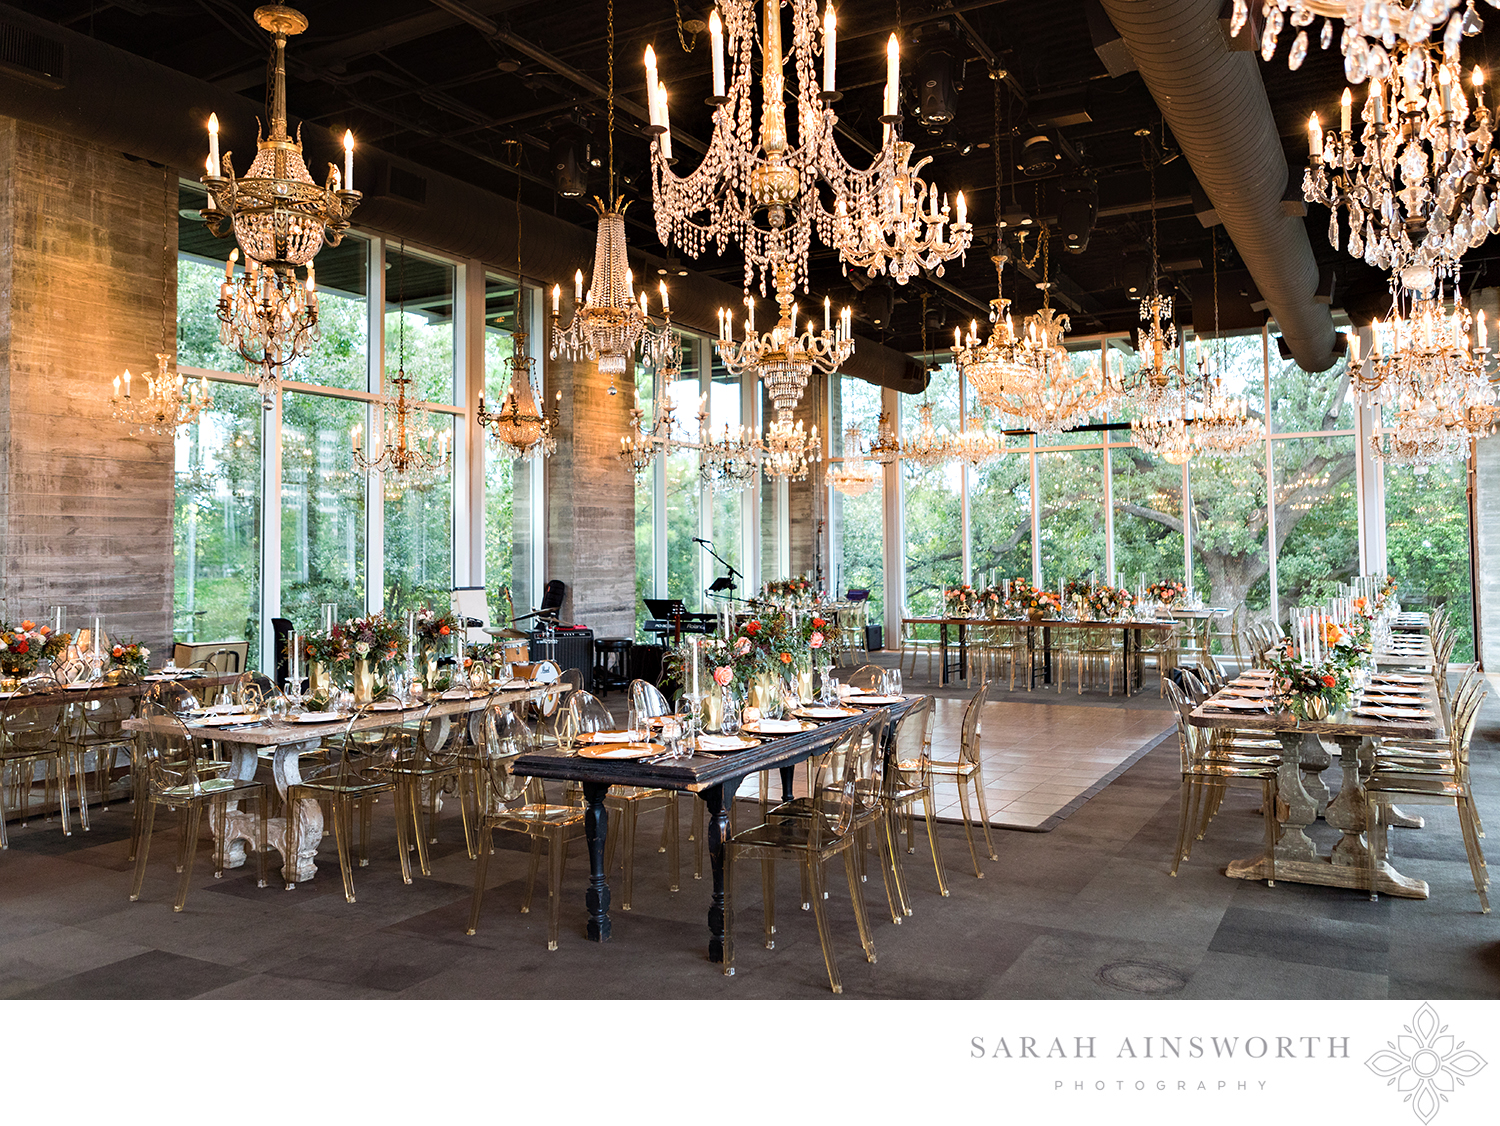 18_the-dunlavy-houston-wedding-houston-wedding-venue-with-chandeliers-houston-restaurants-as-wedding-venues_02.jpg